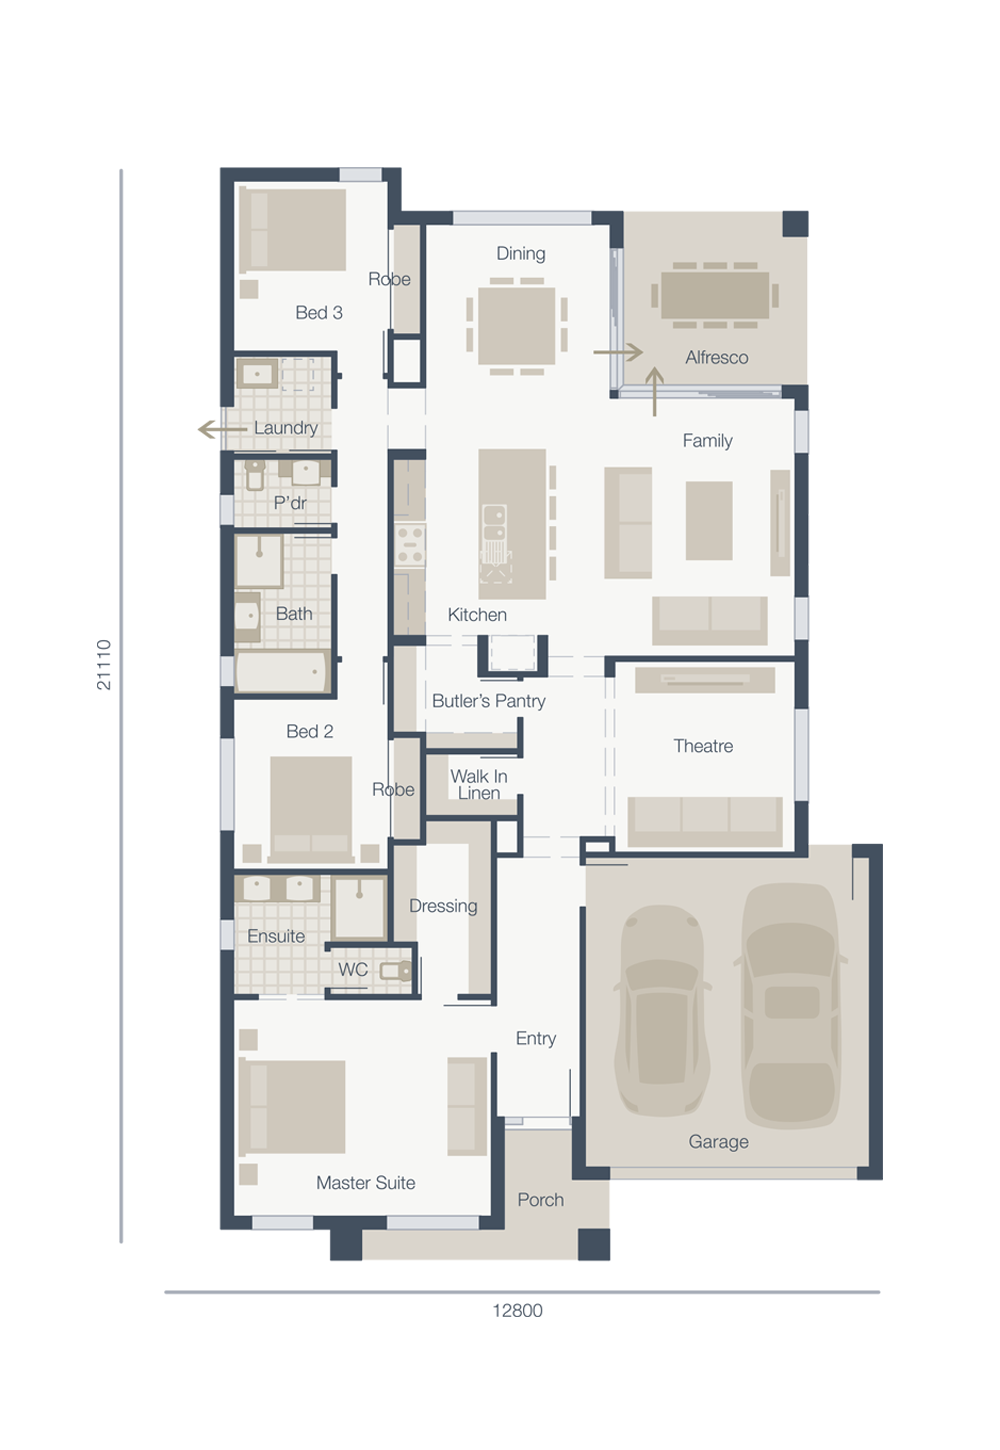 New home designs and floorplans by Melbourne home builders | house ...